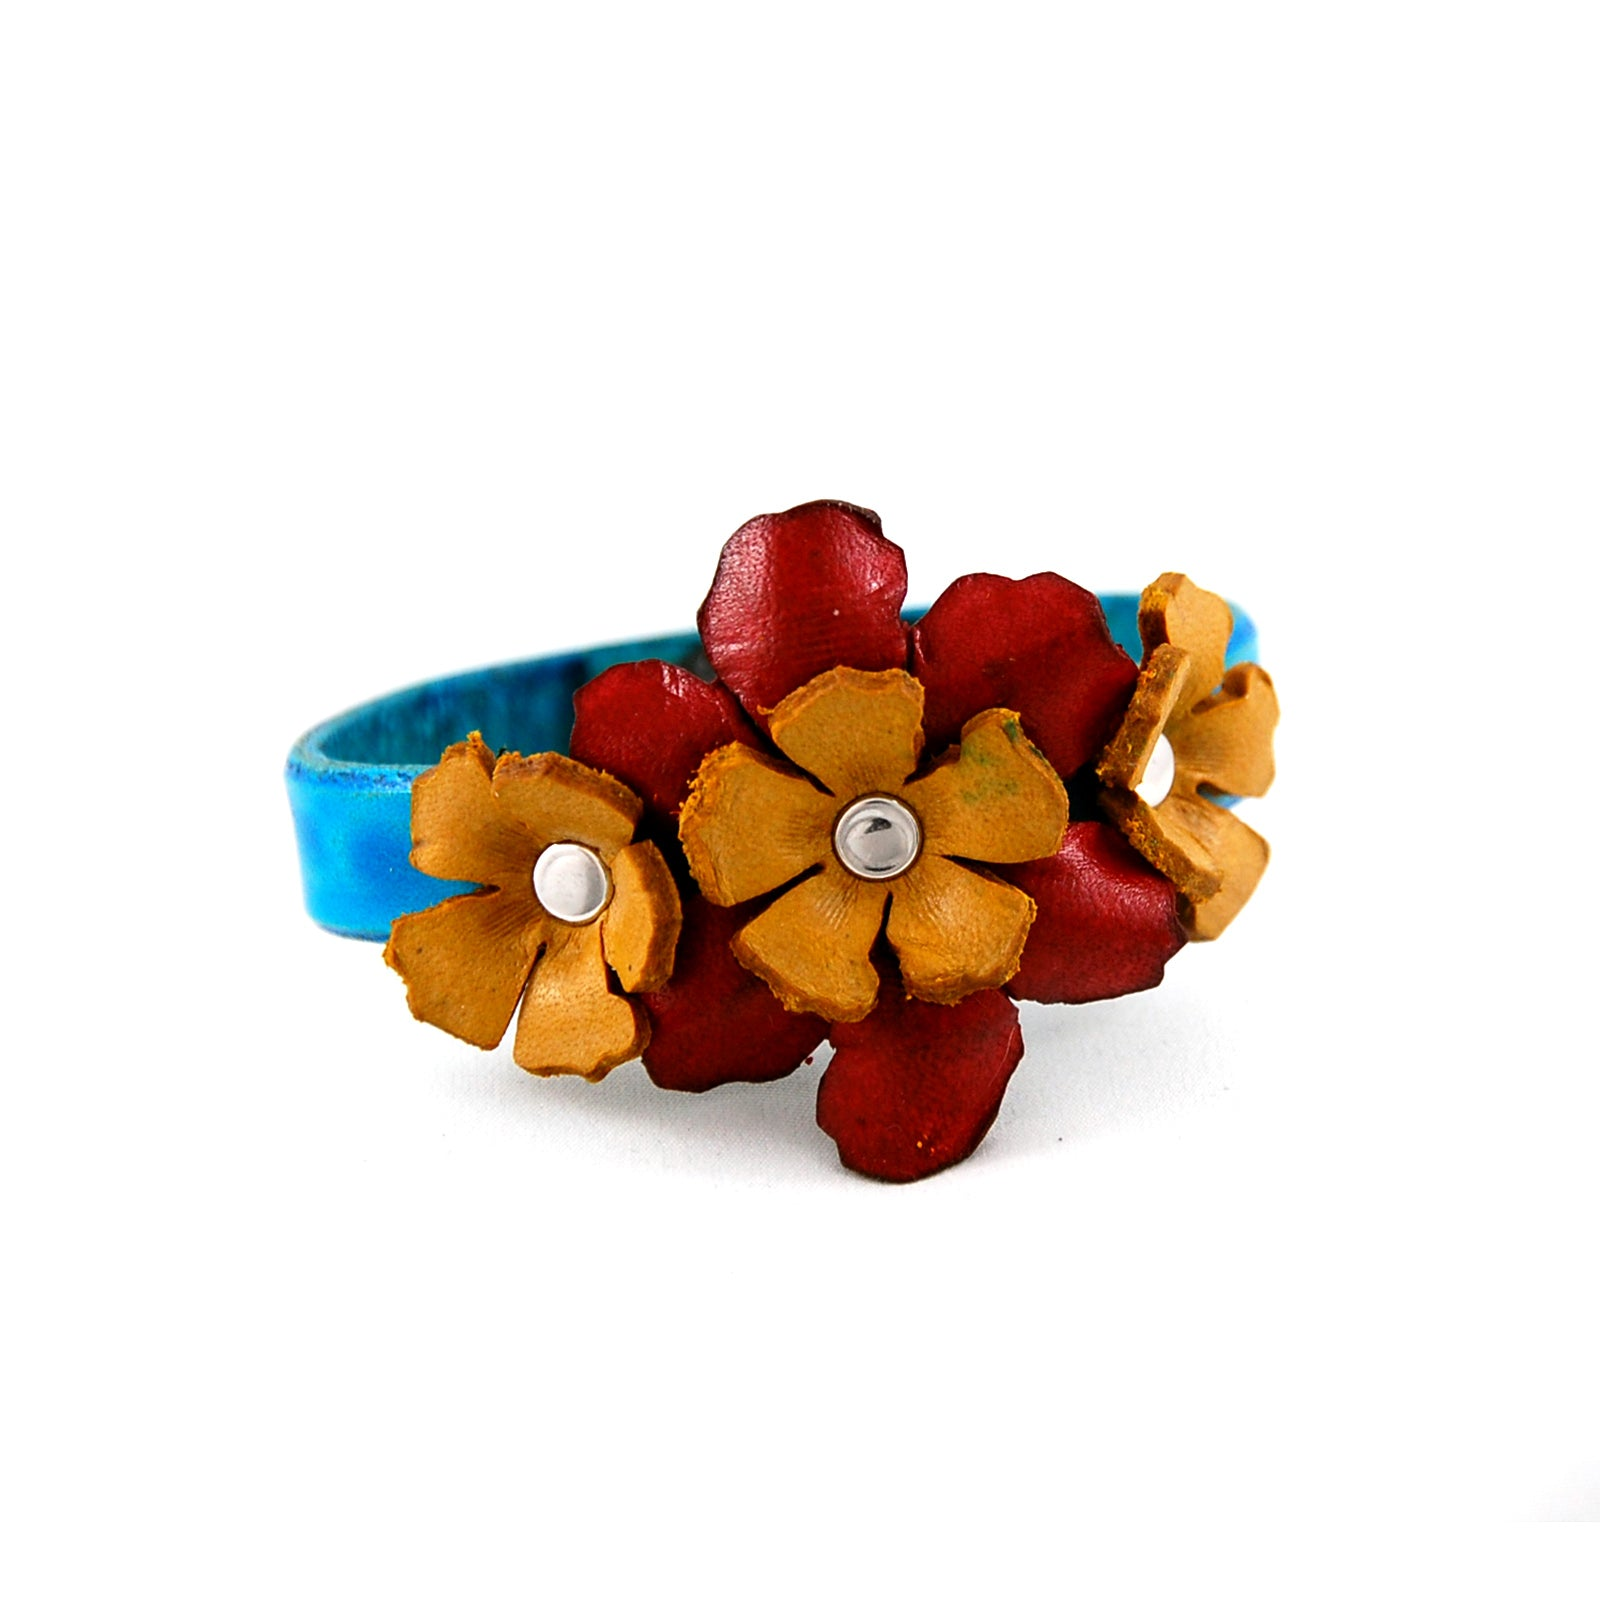 Handmade leather cuff bracelet with a 3 colourful hand sculpted leather flowers